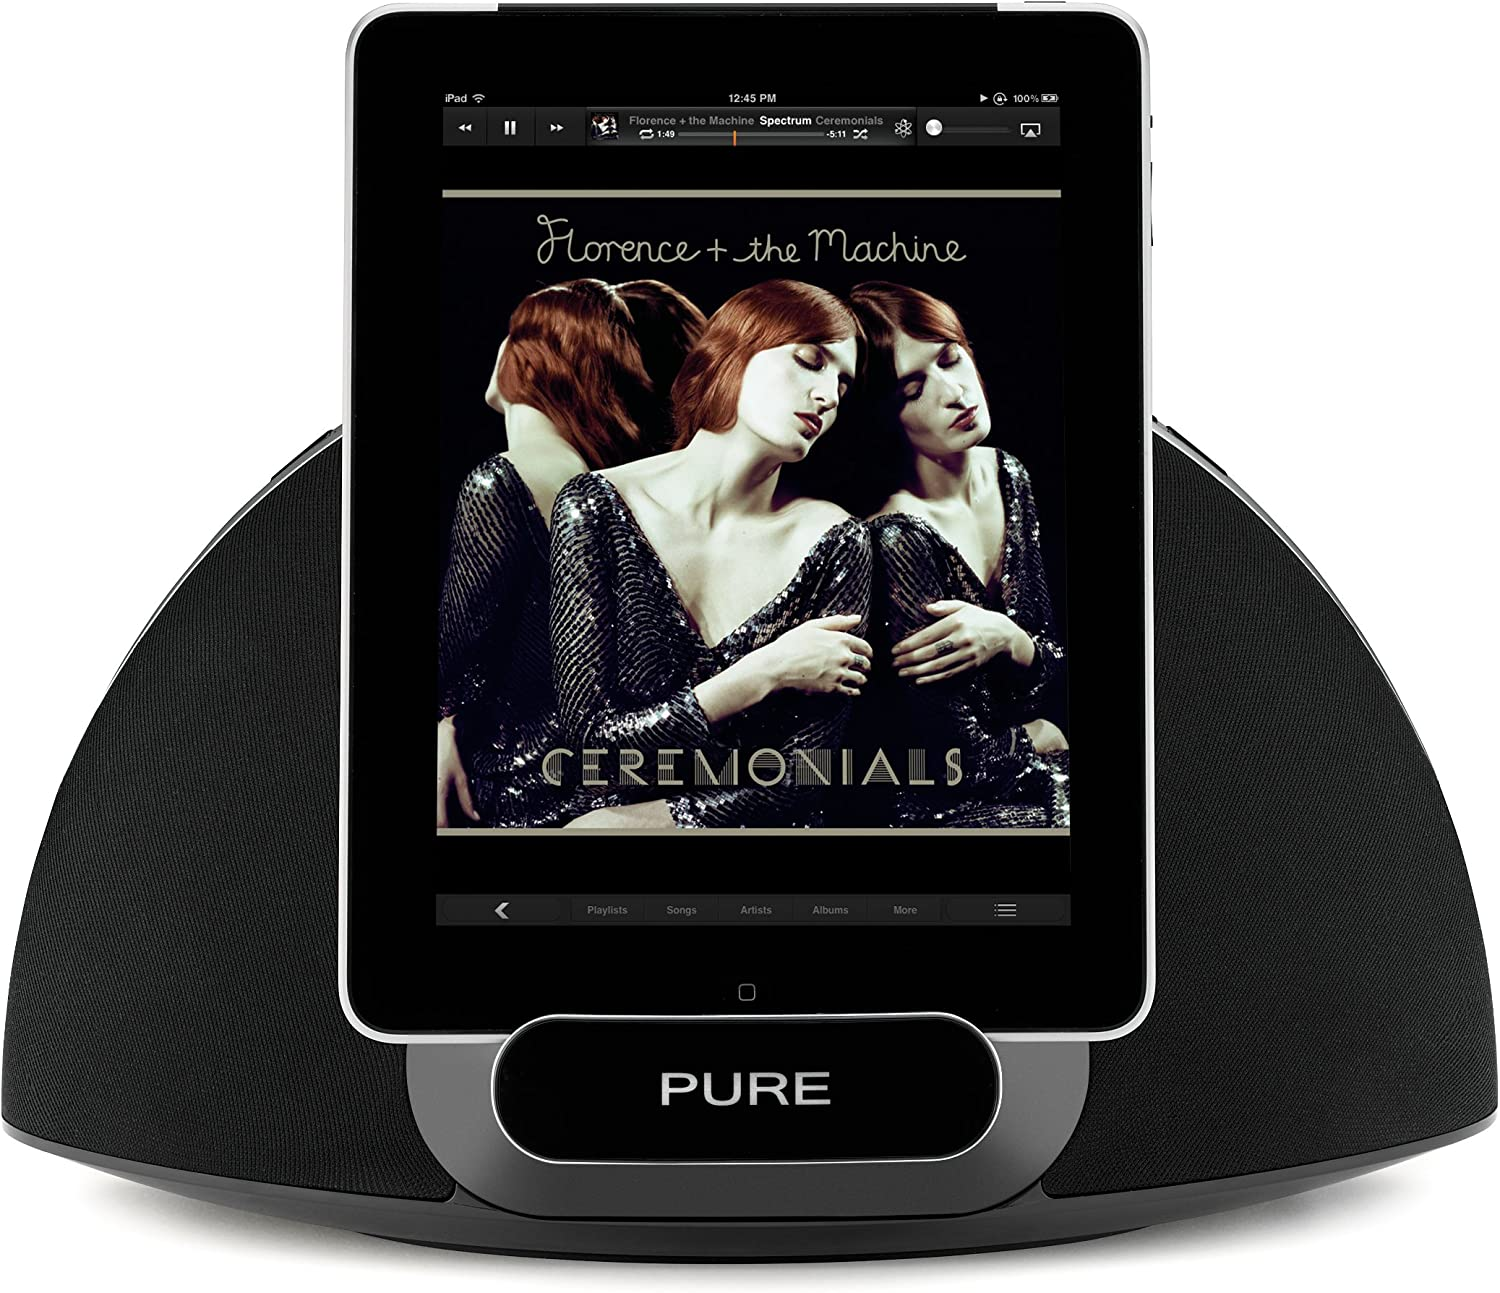 Pure Contour 200i Wireless Digital Music System with AirPlay and Docking Station Speaker for iPad 1 2 3 Ipod Touch Classic Nano Iphone 1 2 3 3gs 4 4s